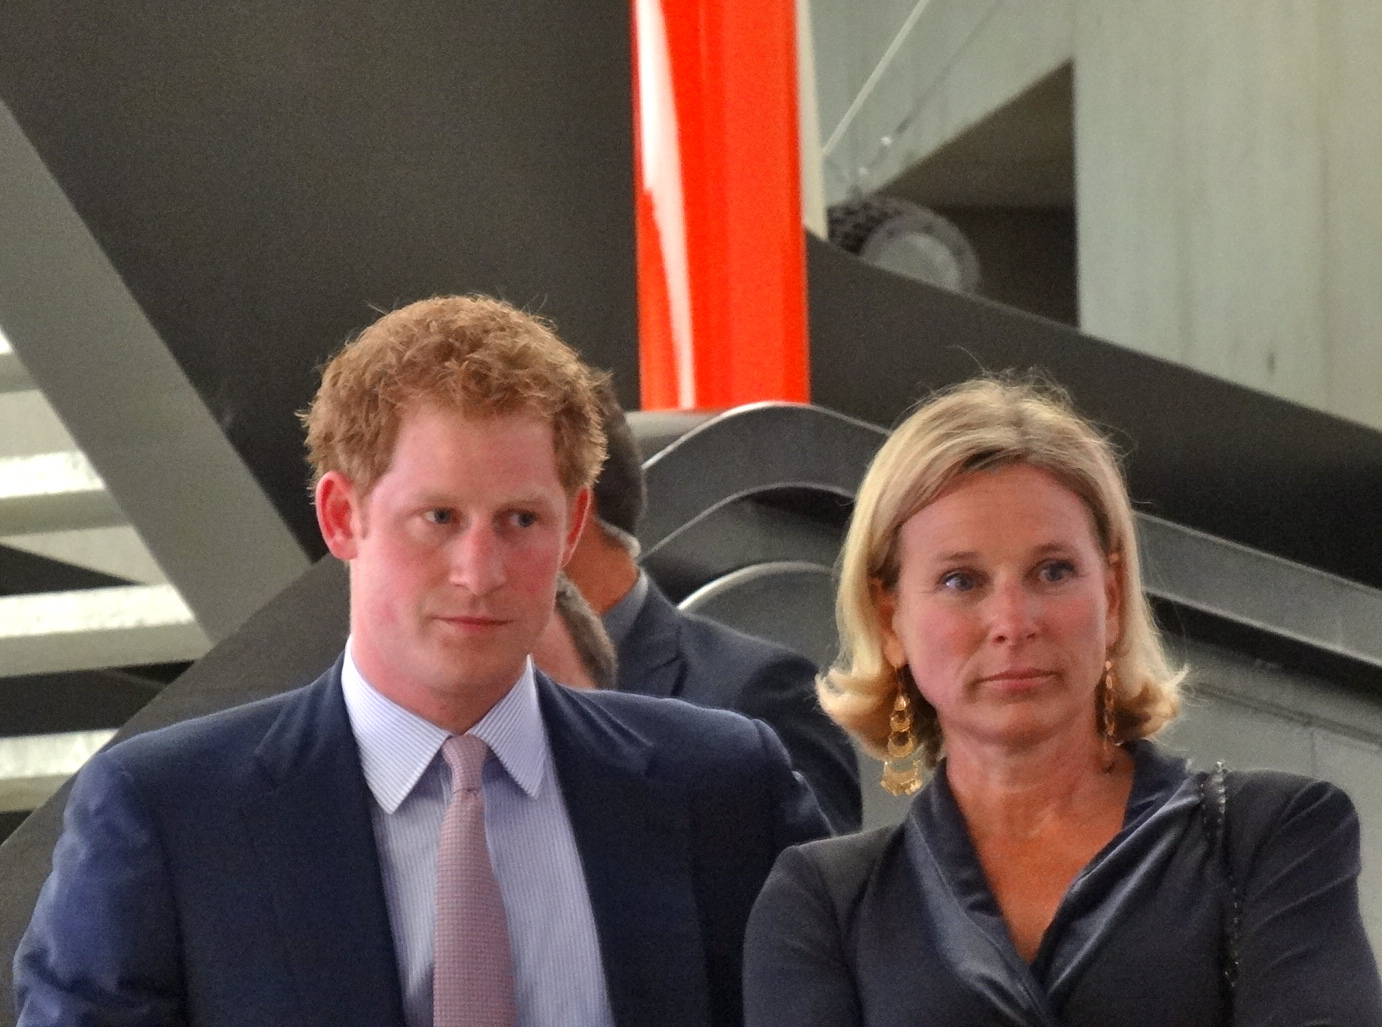 Il Principe Harry e Giovanna Melandri, presidente fondazione Maxxi Prince Harry and Giovanna Melandri, president of Maxxi foundation